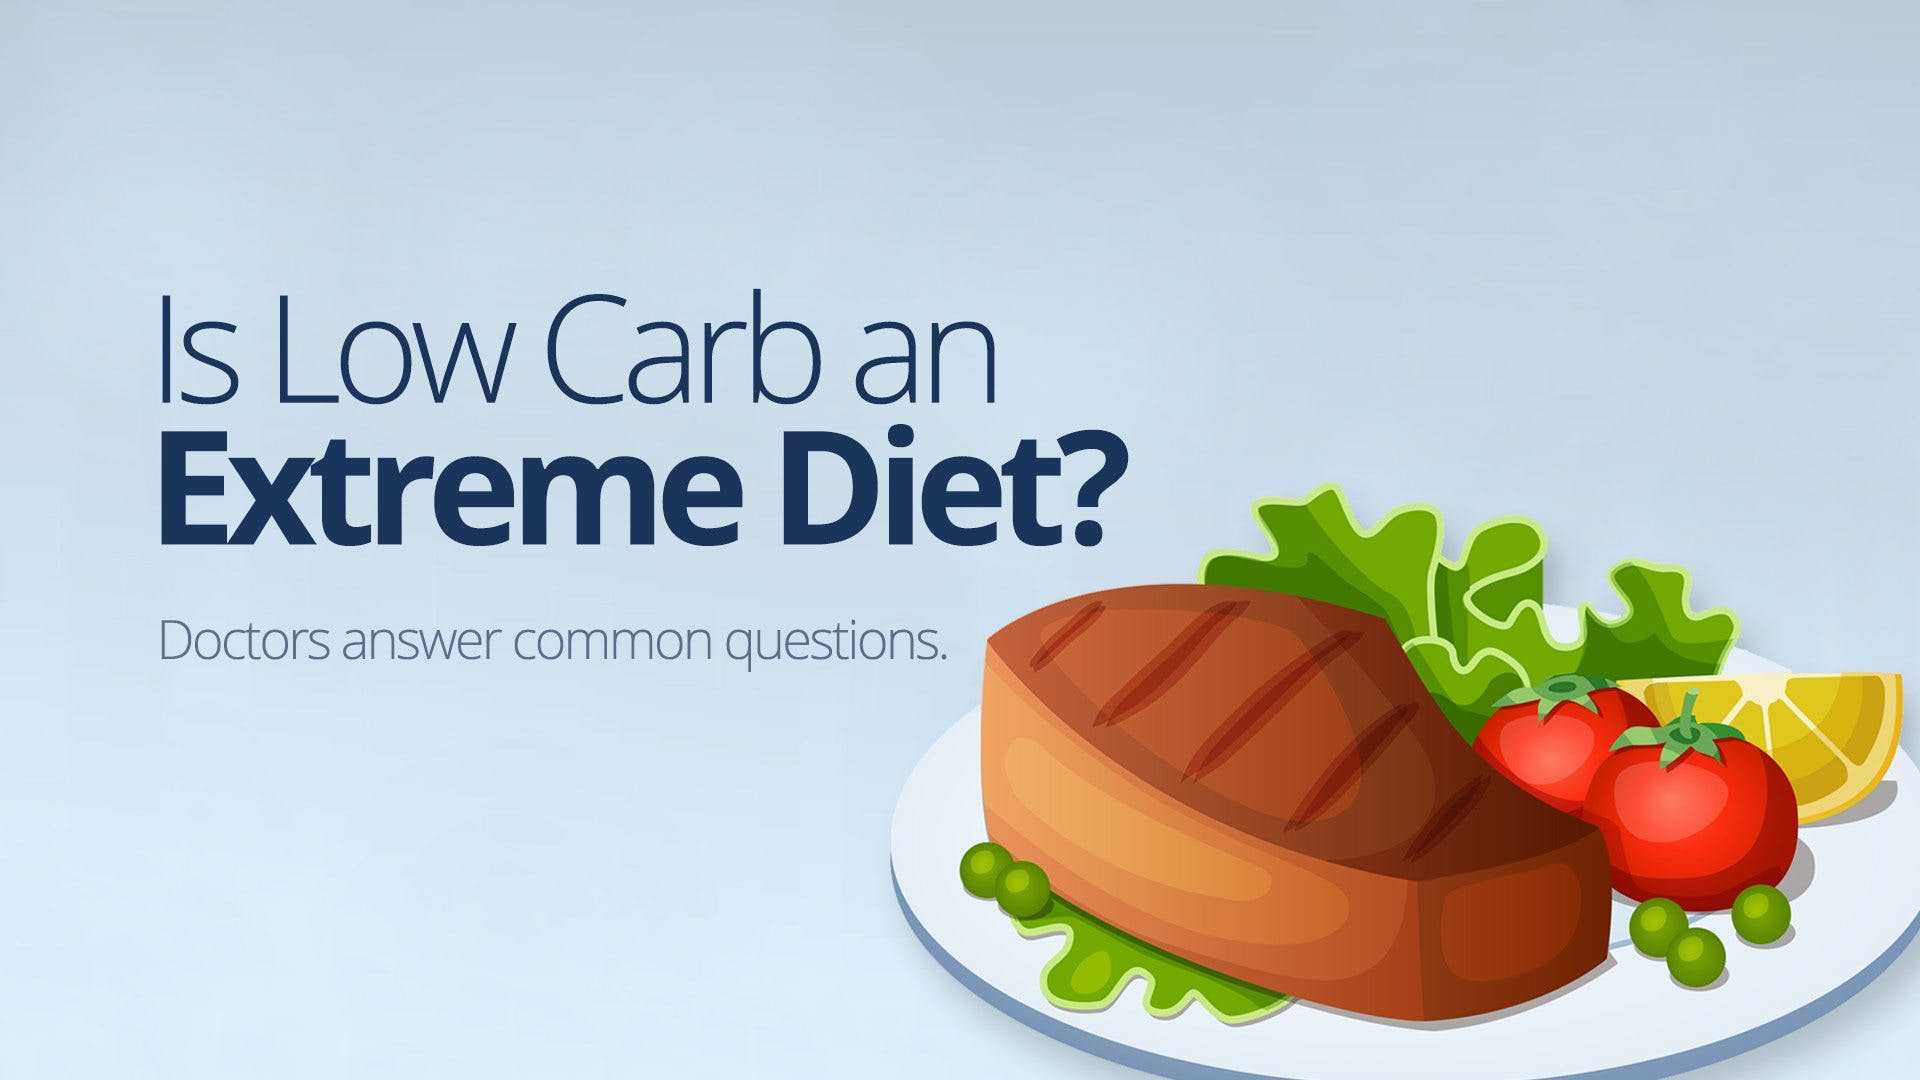 Is low carb an extreme diet?